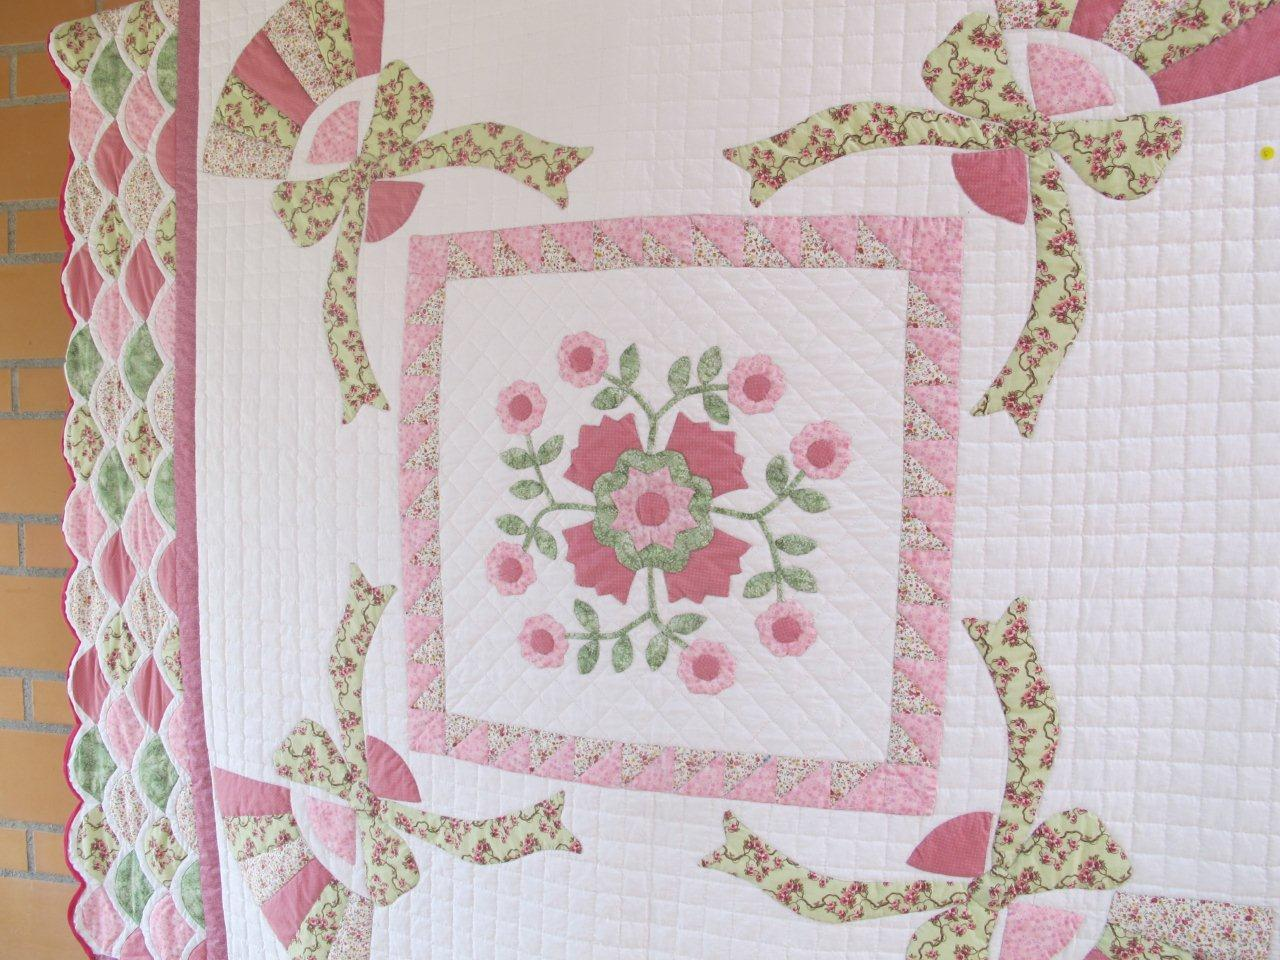 Expo patch 9